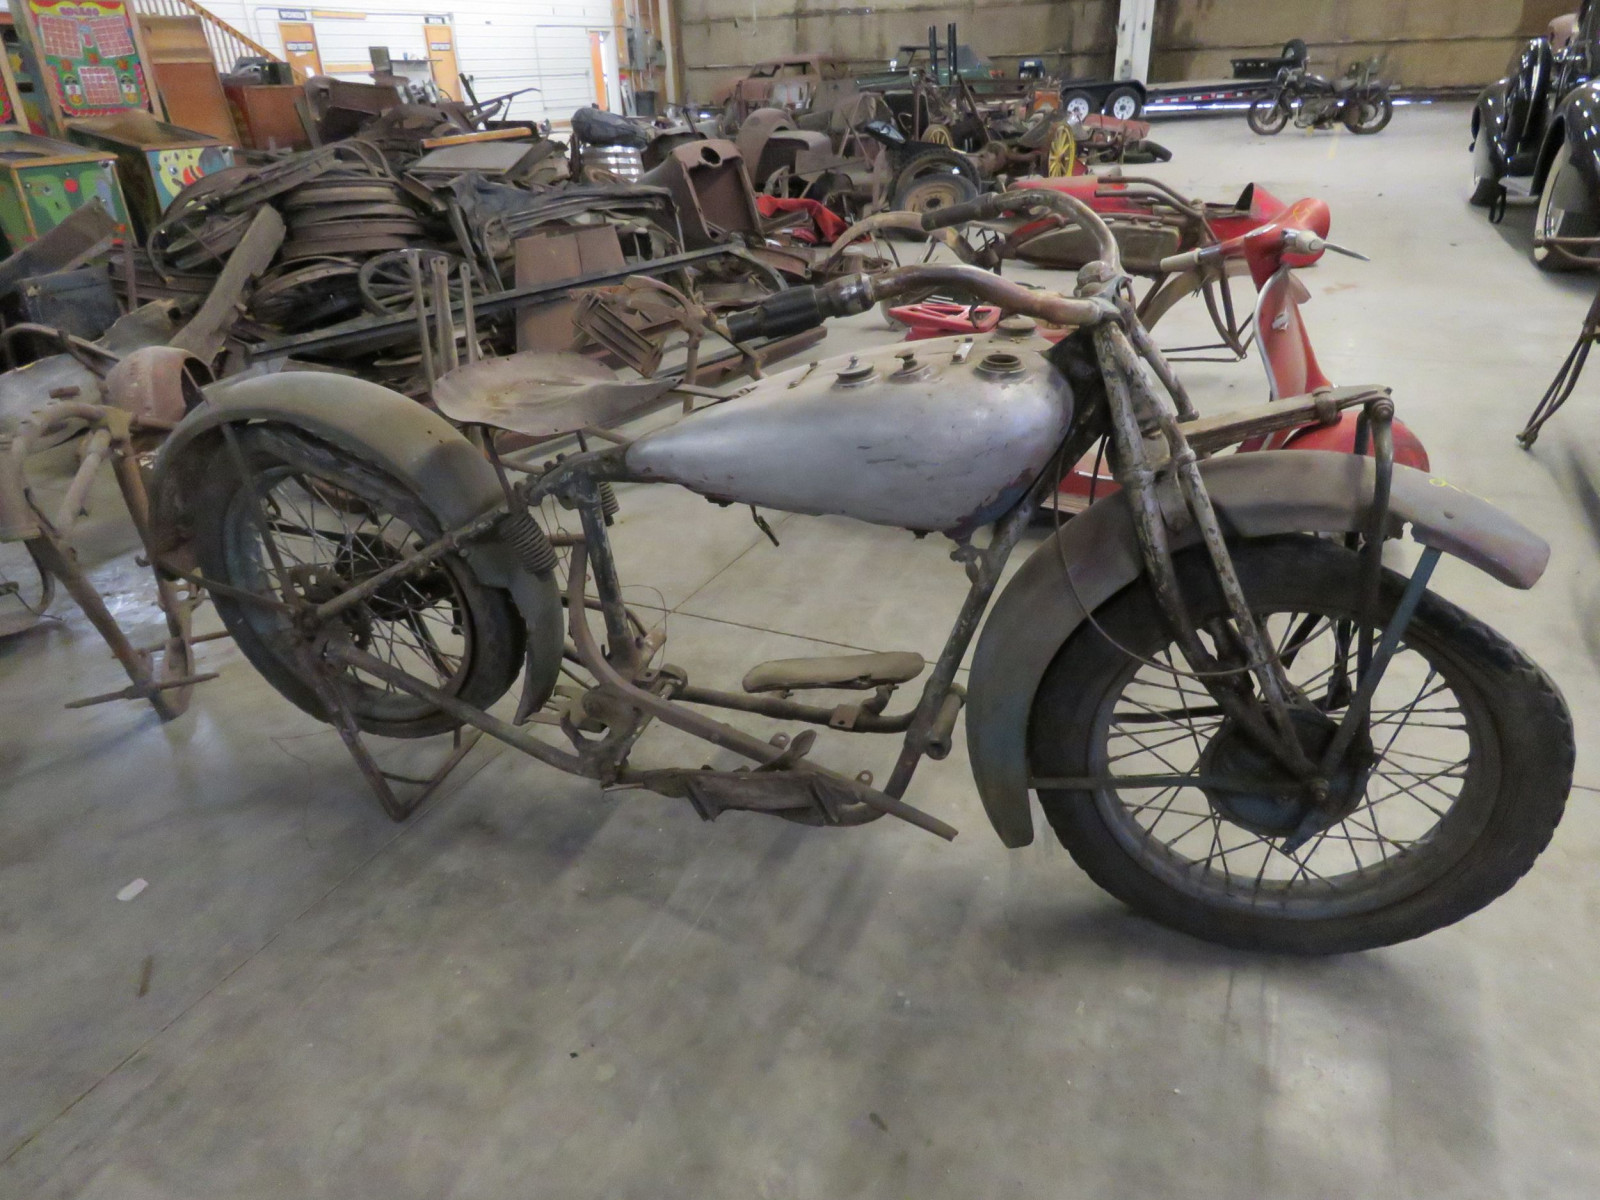 RARE 1929 Indian V-Twin Motorcycle - Image 3